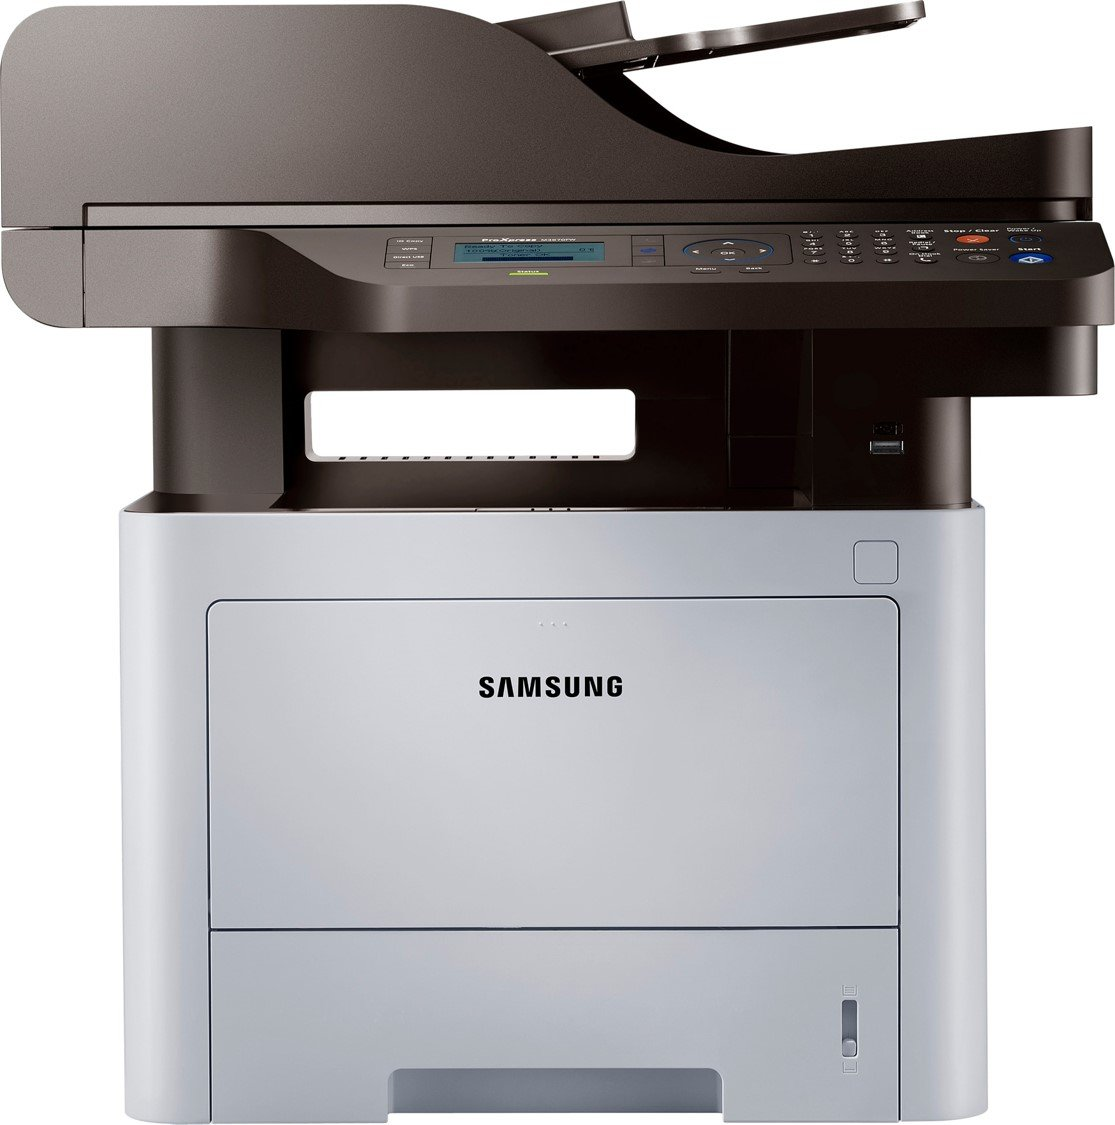 Samsung ProXpress M3870FW Wireless Monochrome Laser Printer with Scan/Copy/Fax, Mobile Connectivity, Duplex Printing, Print Security & Management ...